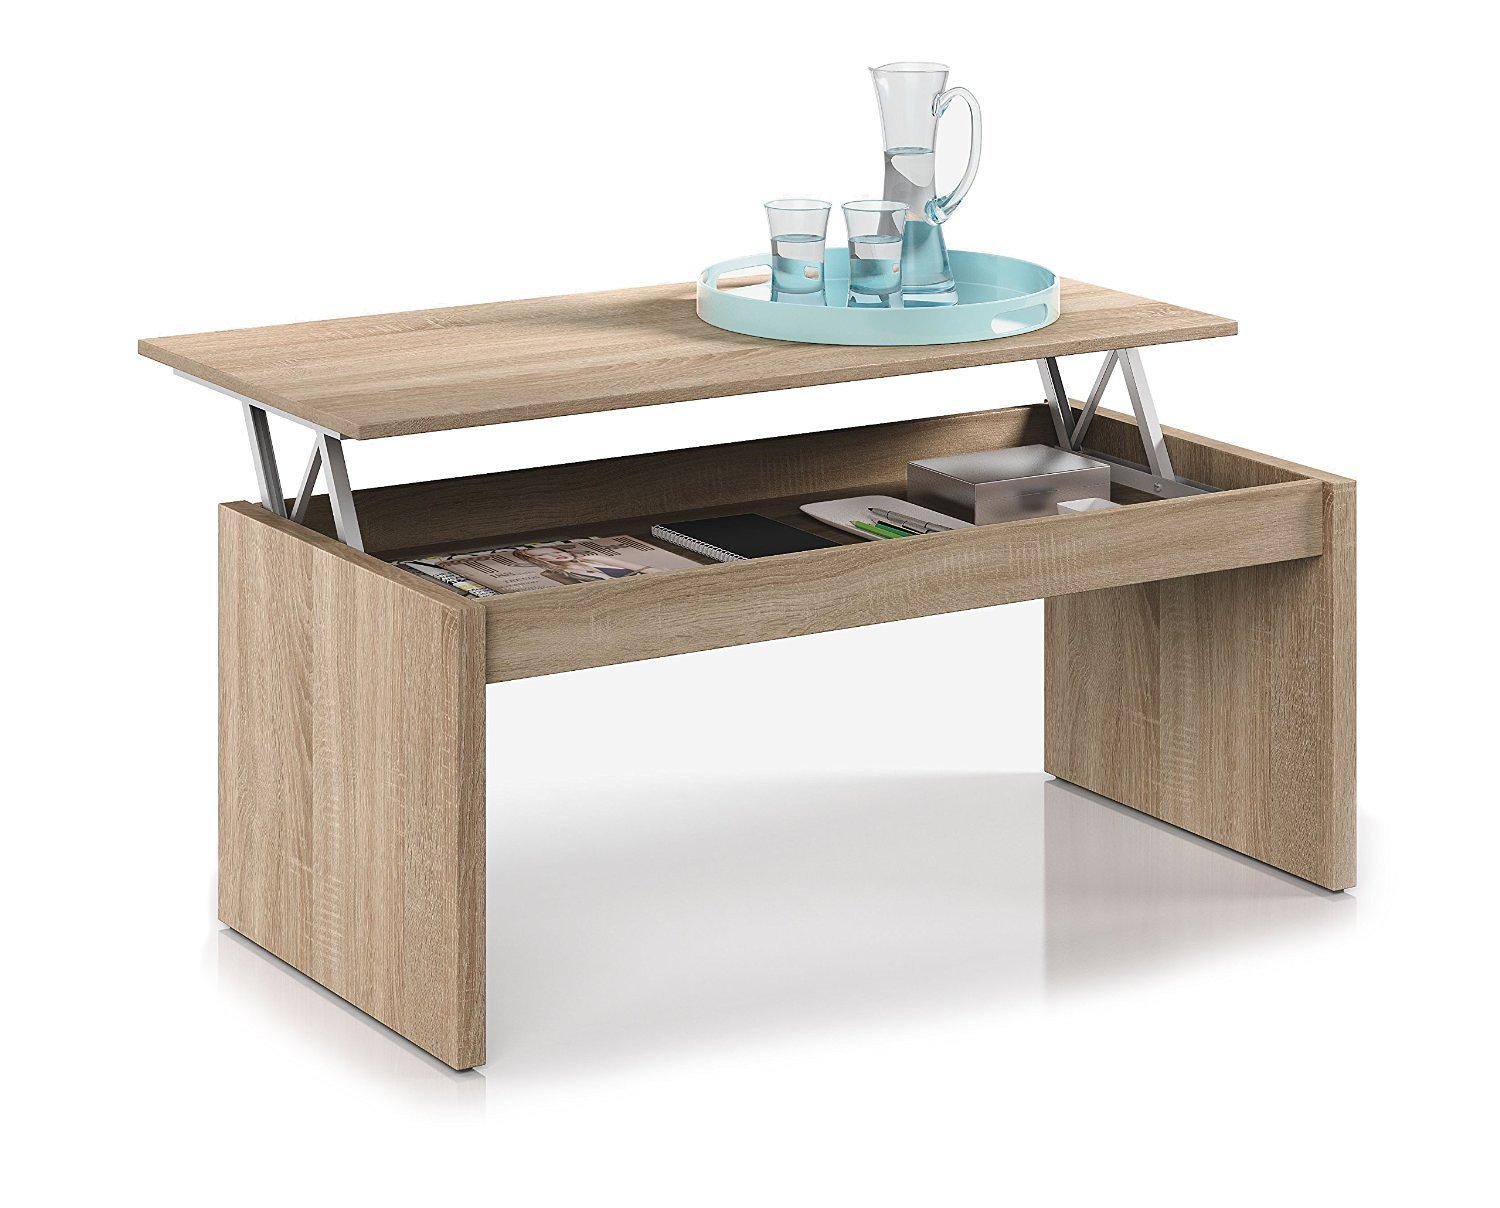 Fabulous habitdesign f table basse chne naturel avec for Table qui s agrandit ikea